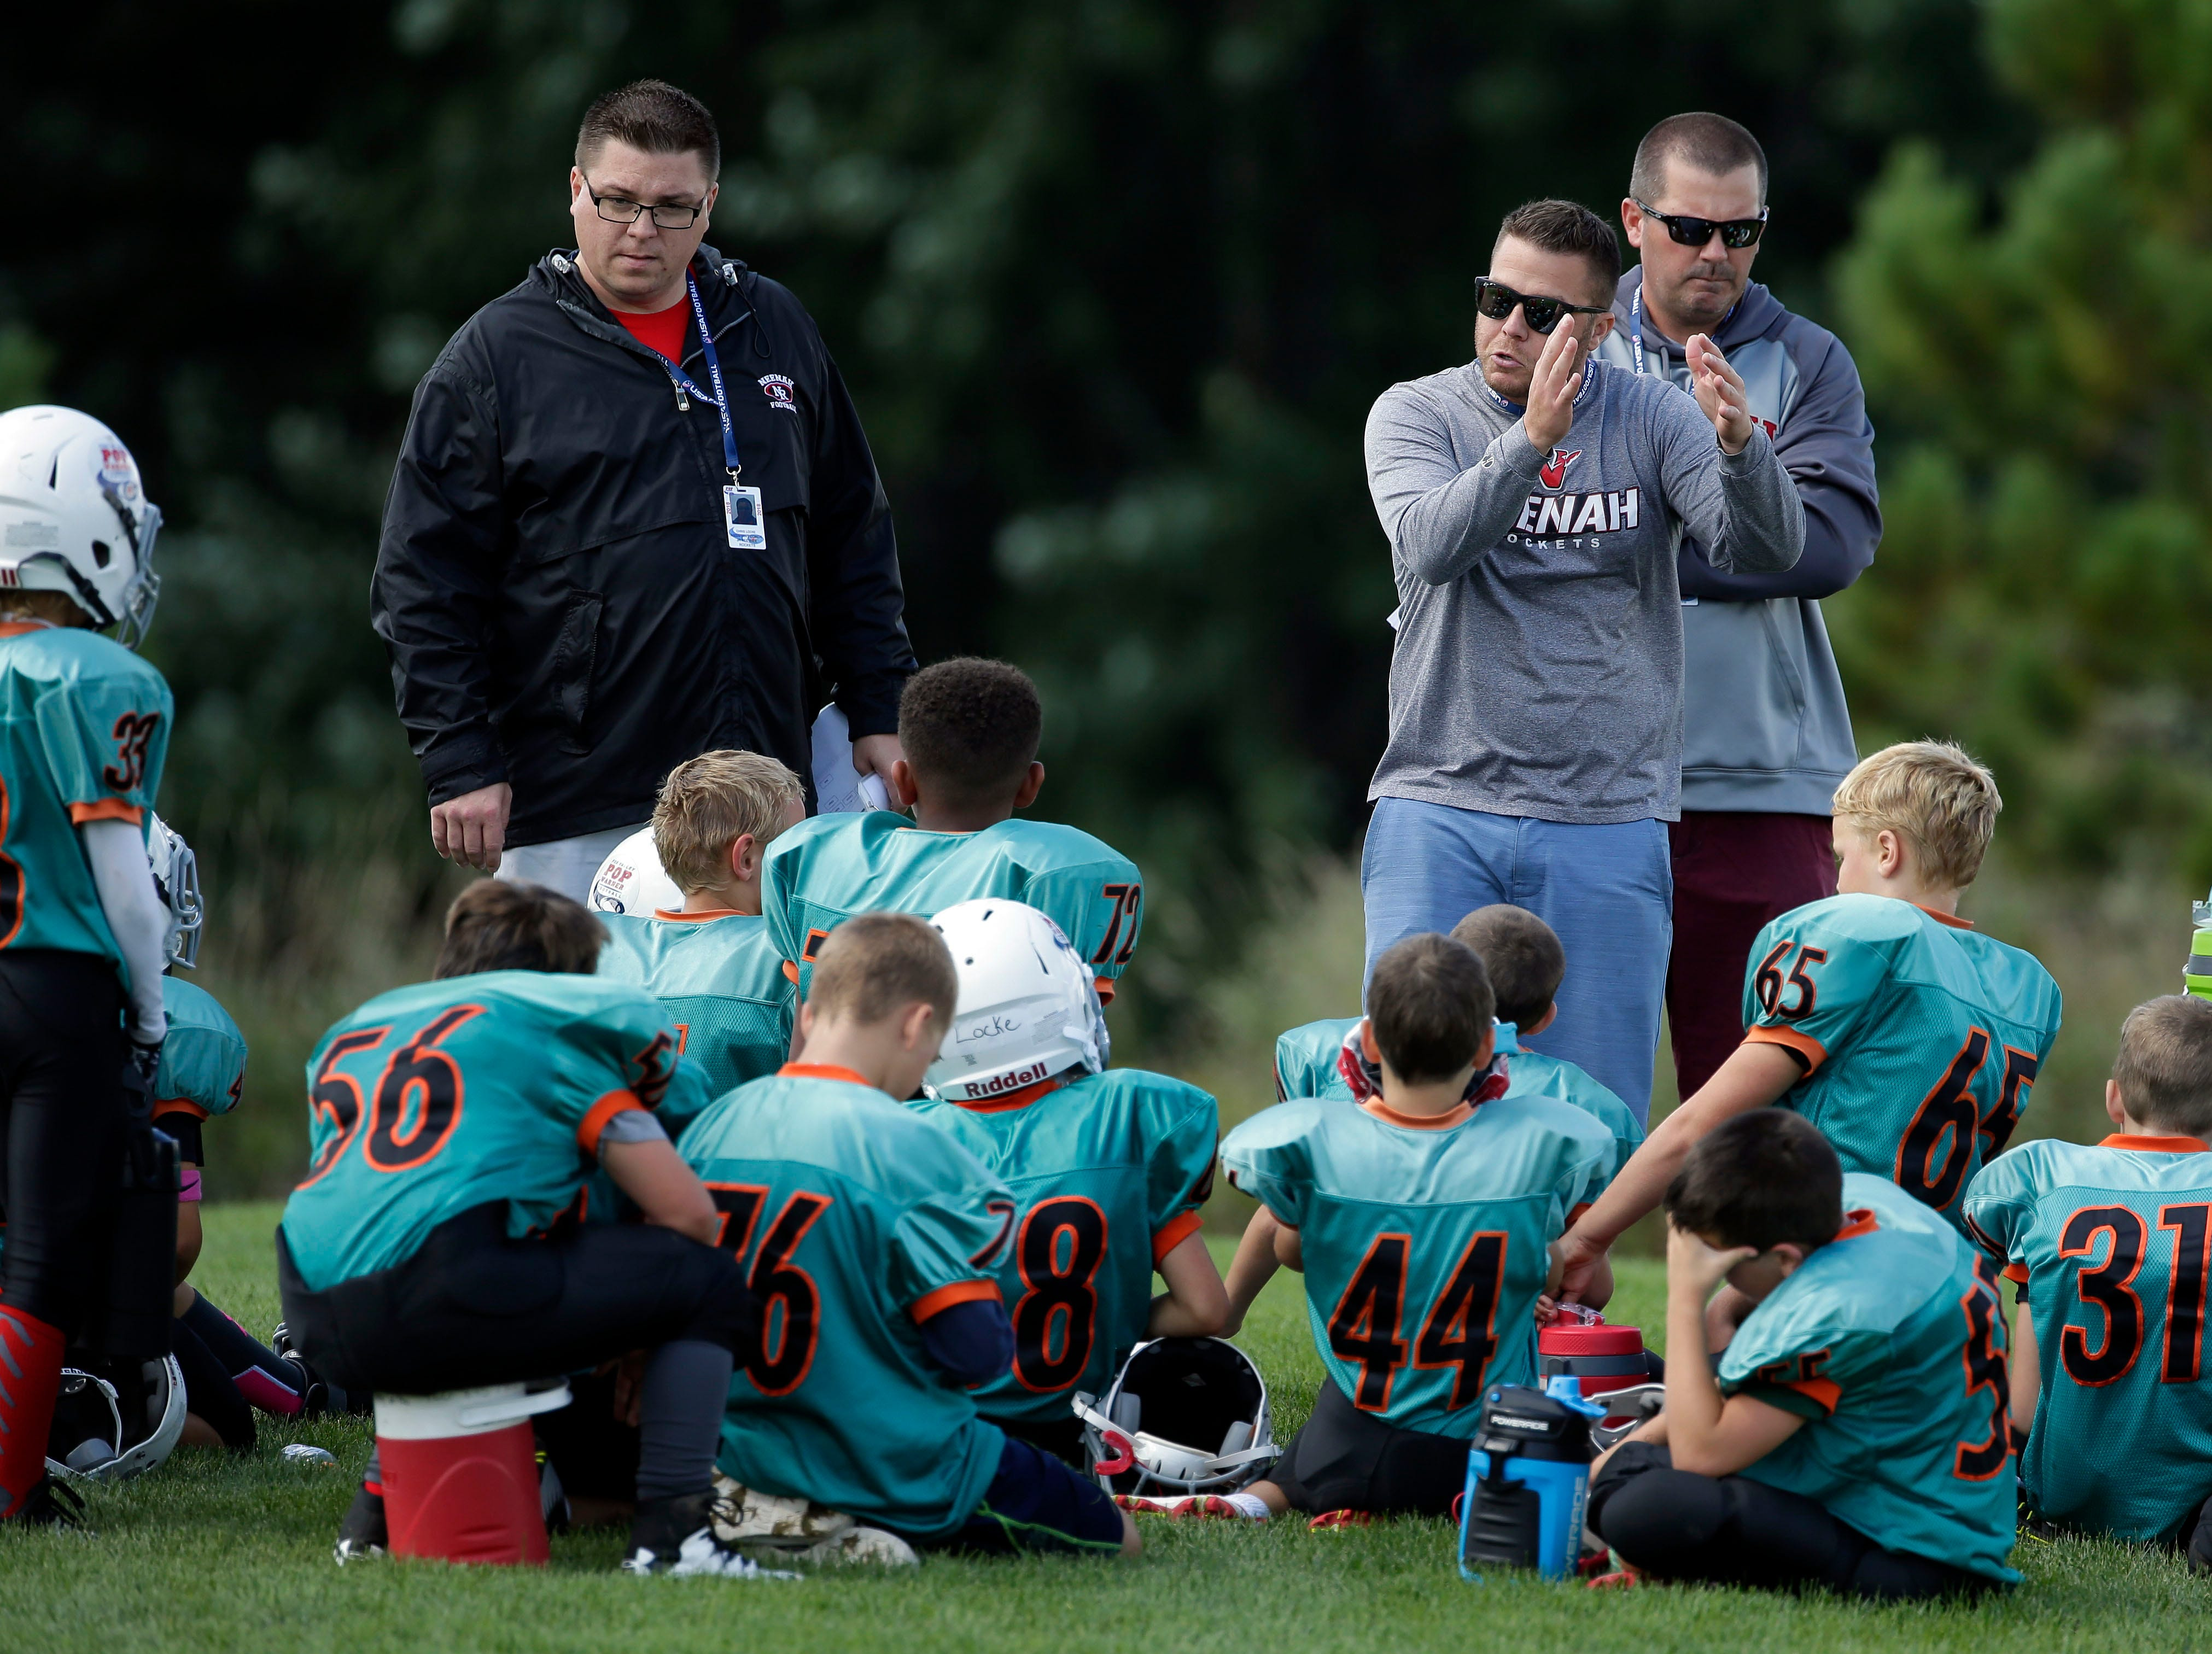 Coaches get a few minutes during the half to talk with their team as Fox Valley Pop Warner Football opens the season Saturday, September 8, 2018, at Plamann Park in Grand Chute, Wis.Ron Page/USA TODAY NETWORK-Wisconsin